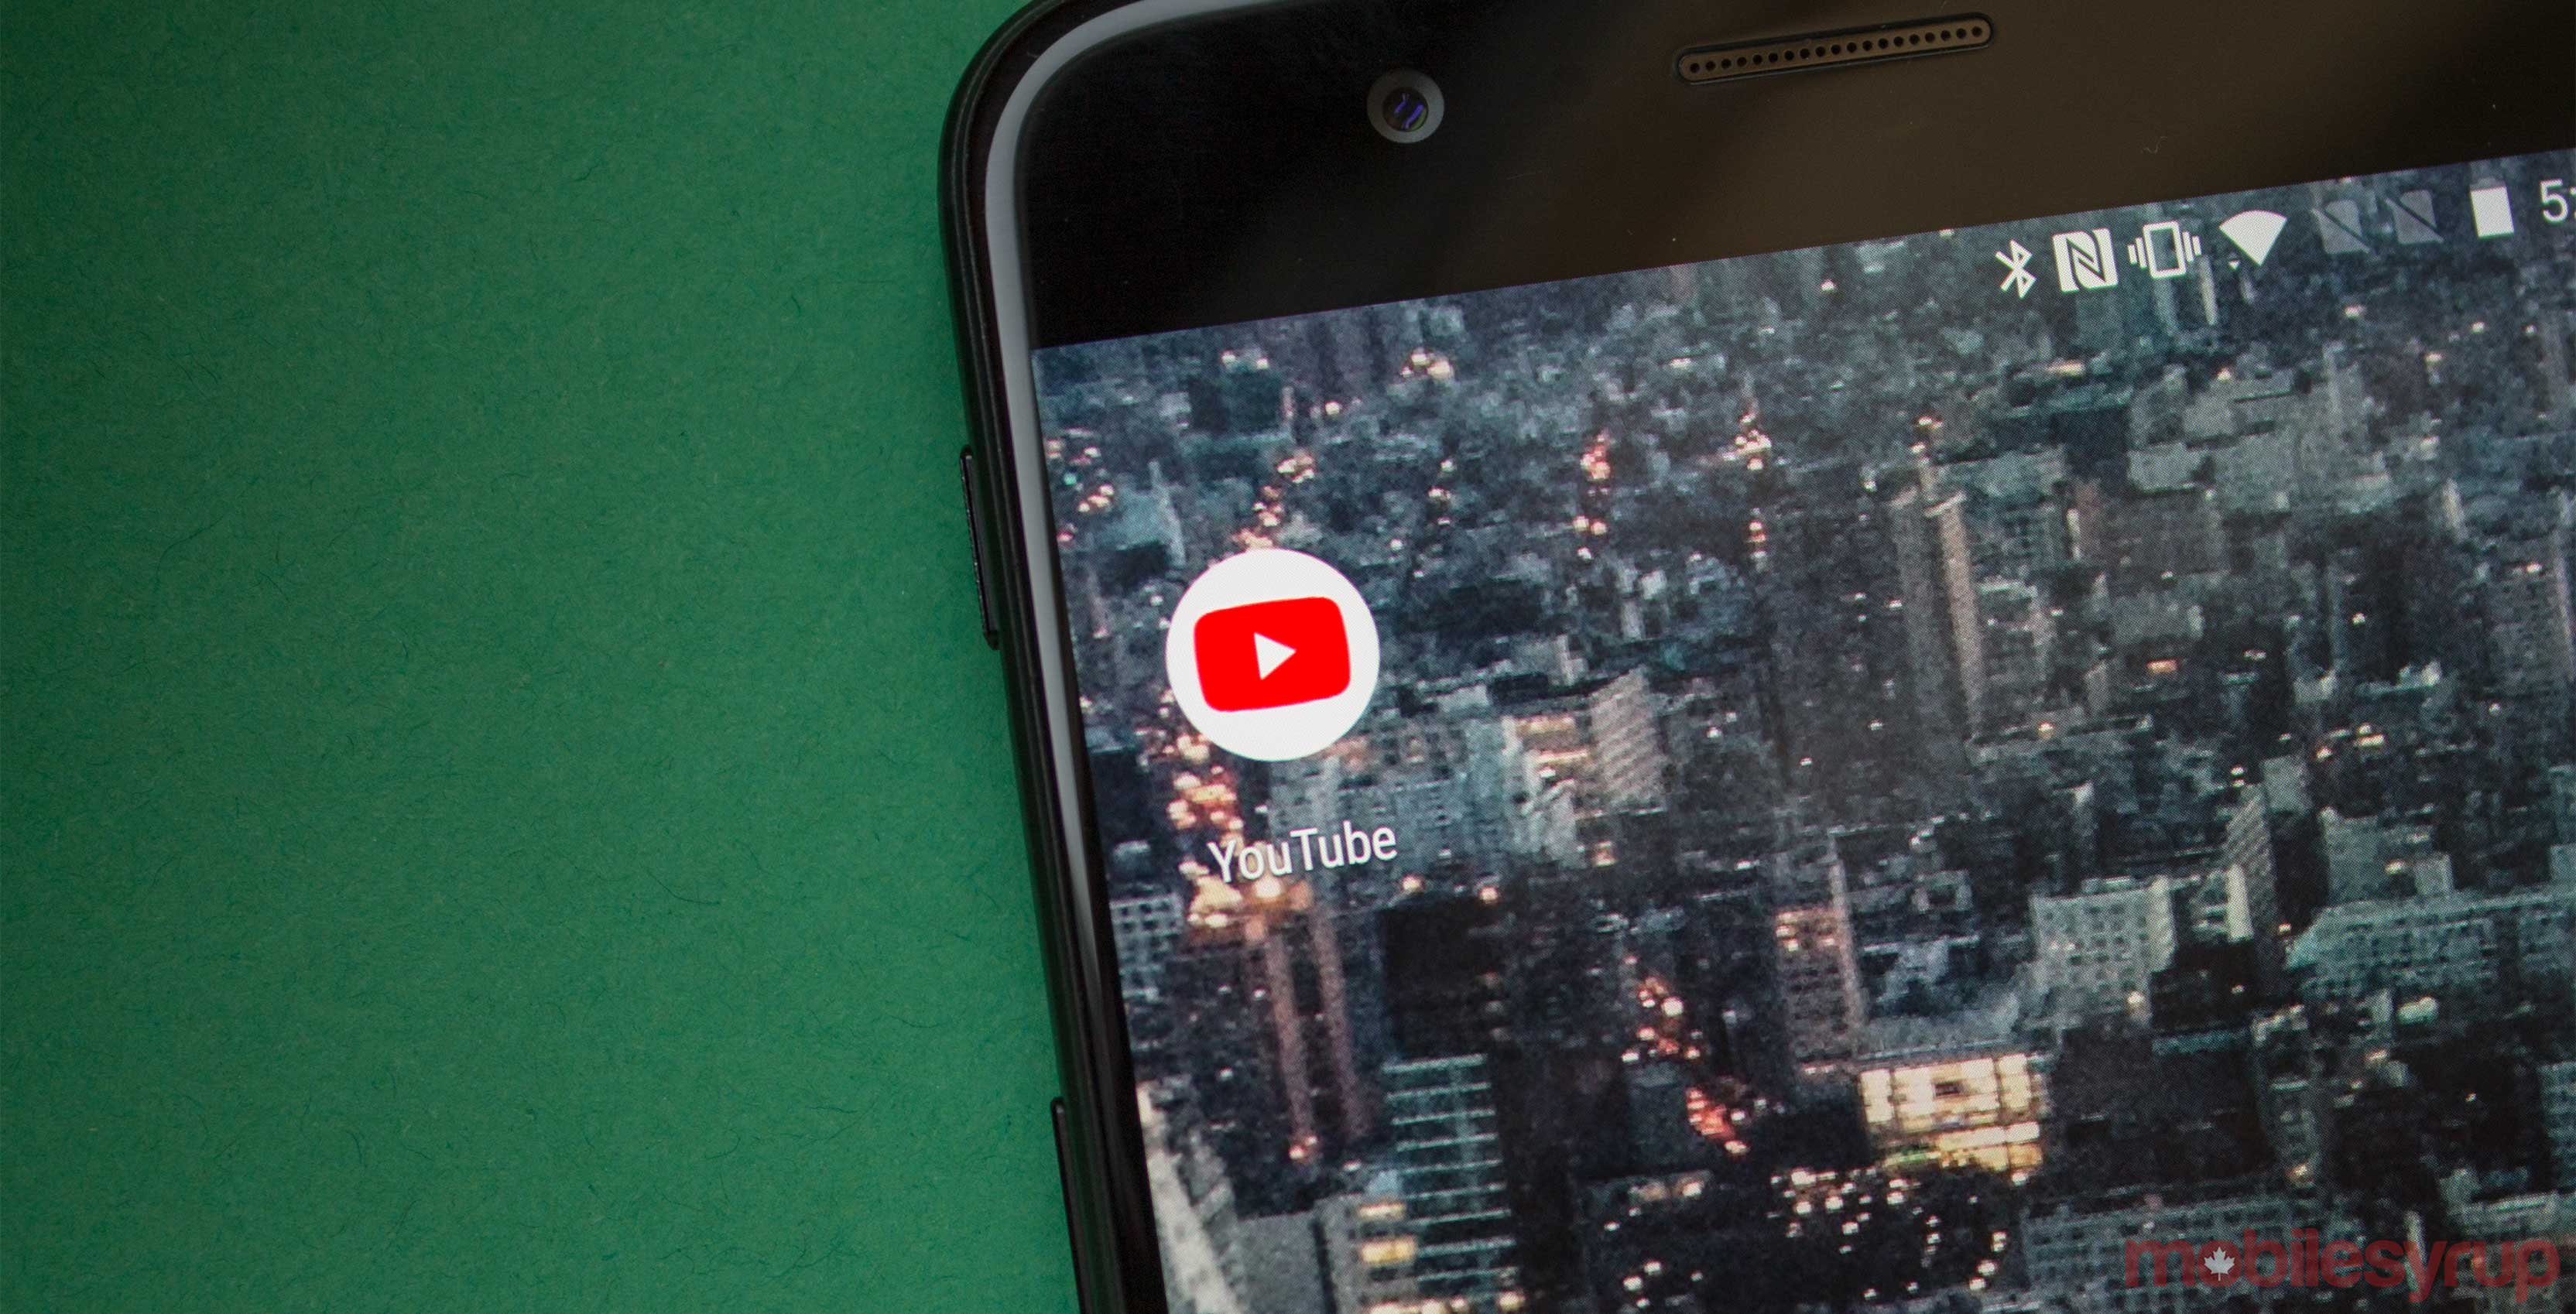 YouTube adds automatic video downloading for Premium subscribers